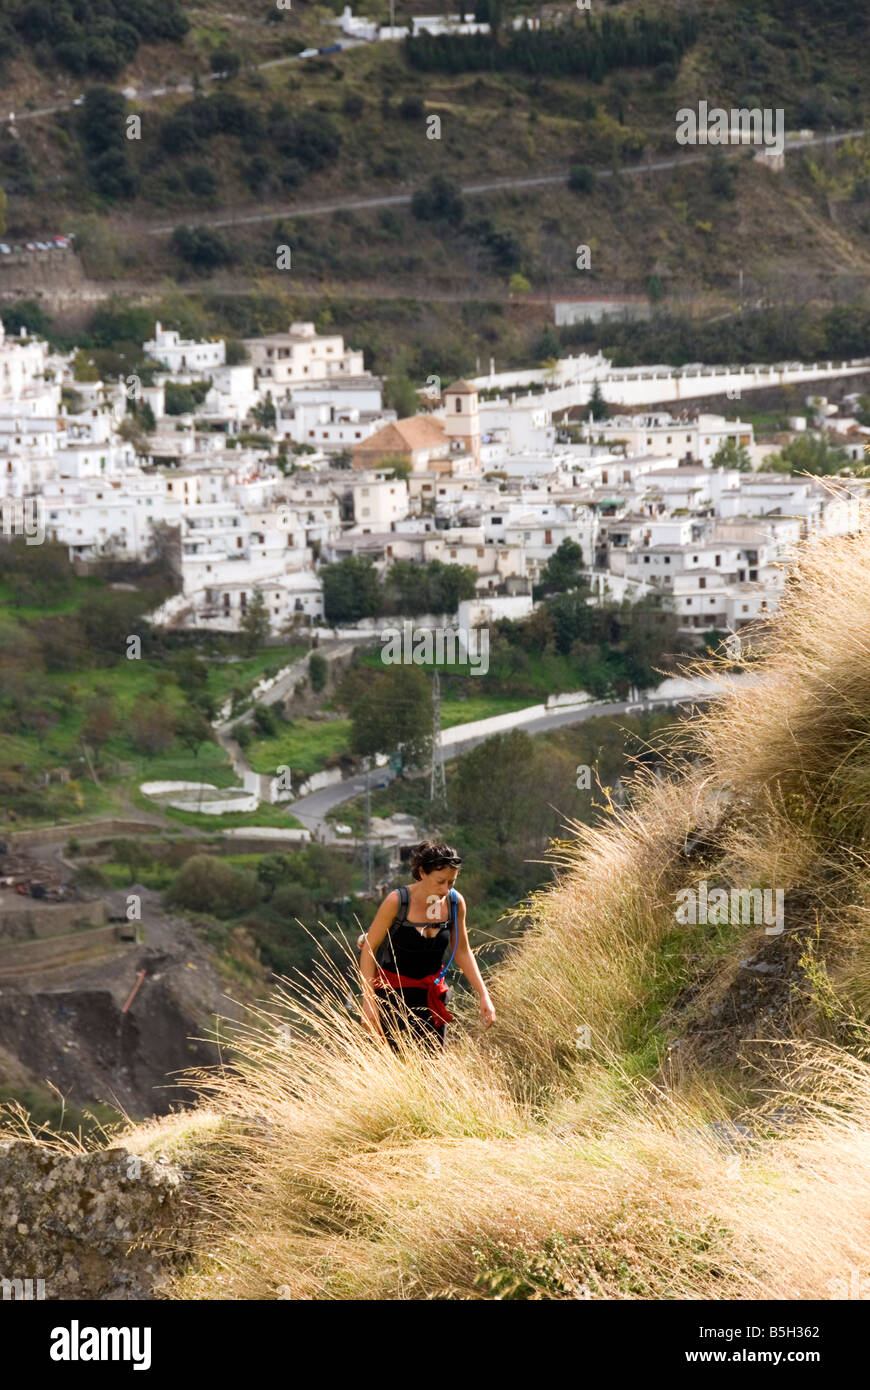 Trekker on trail with view to village of Pampaniera in the Poqueira valley Sierra Nevada mountains in southern Spain - Stock Image